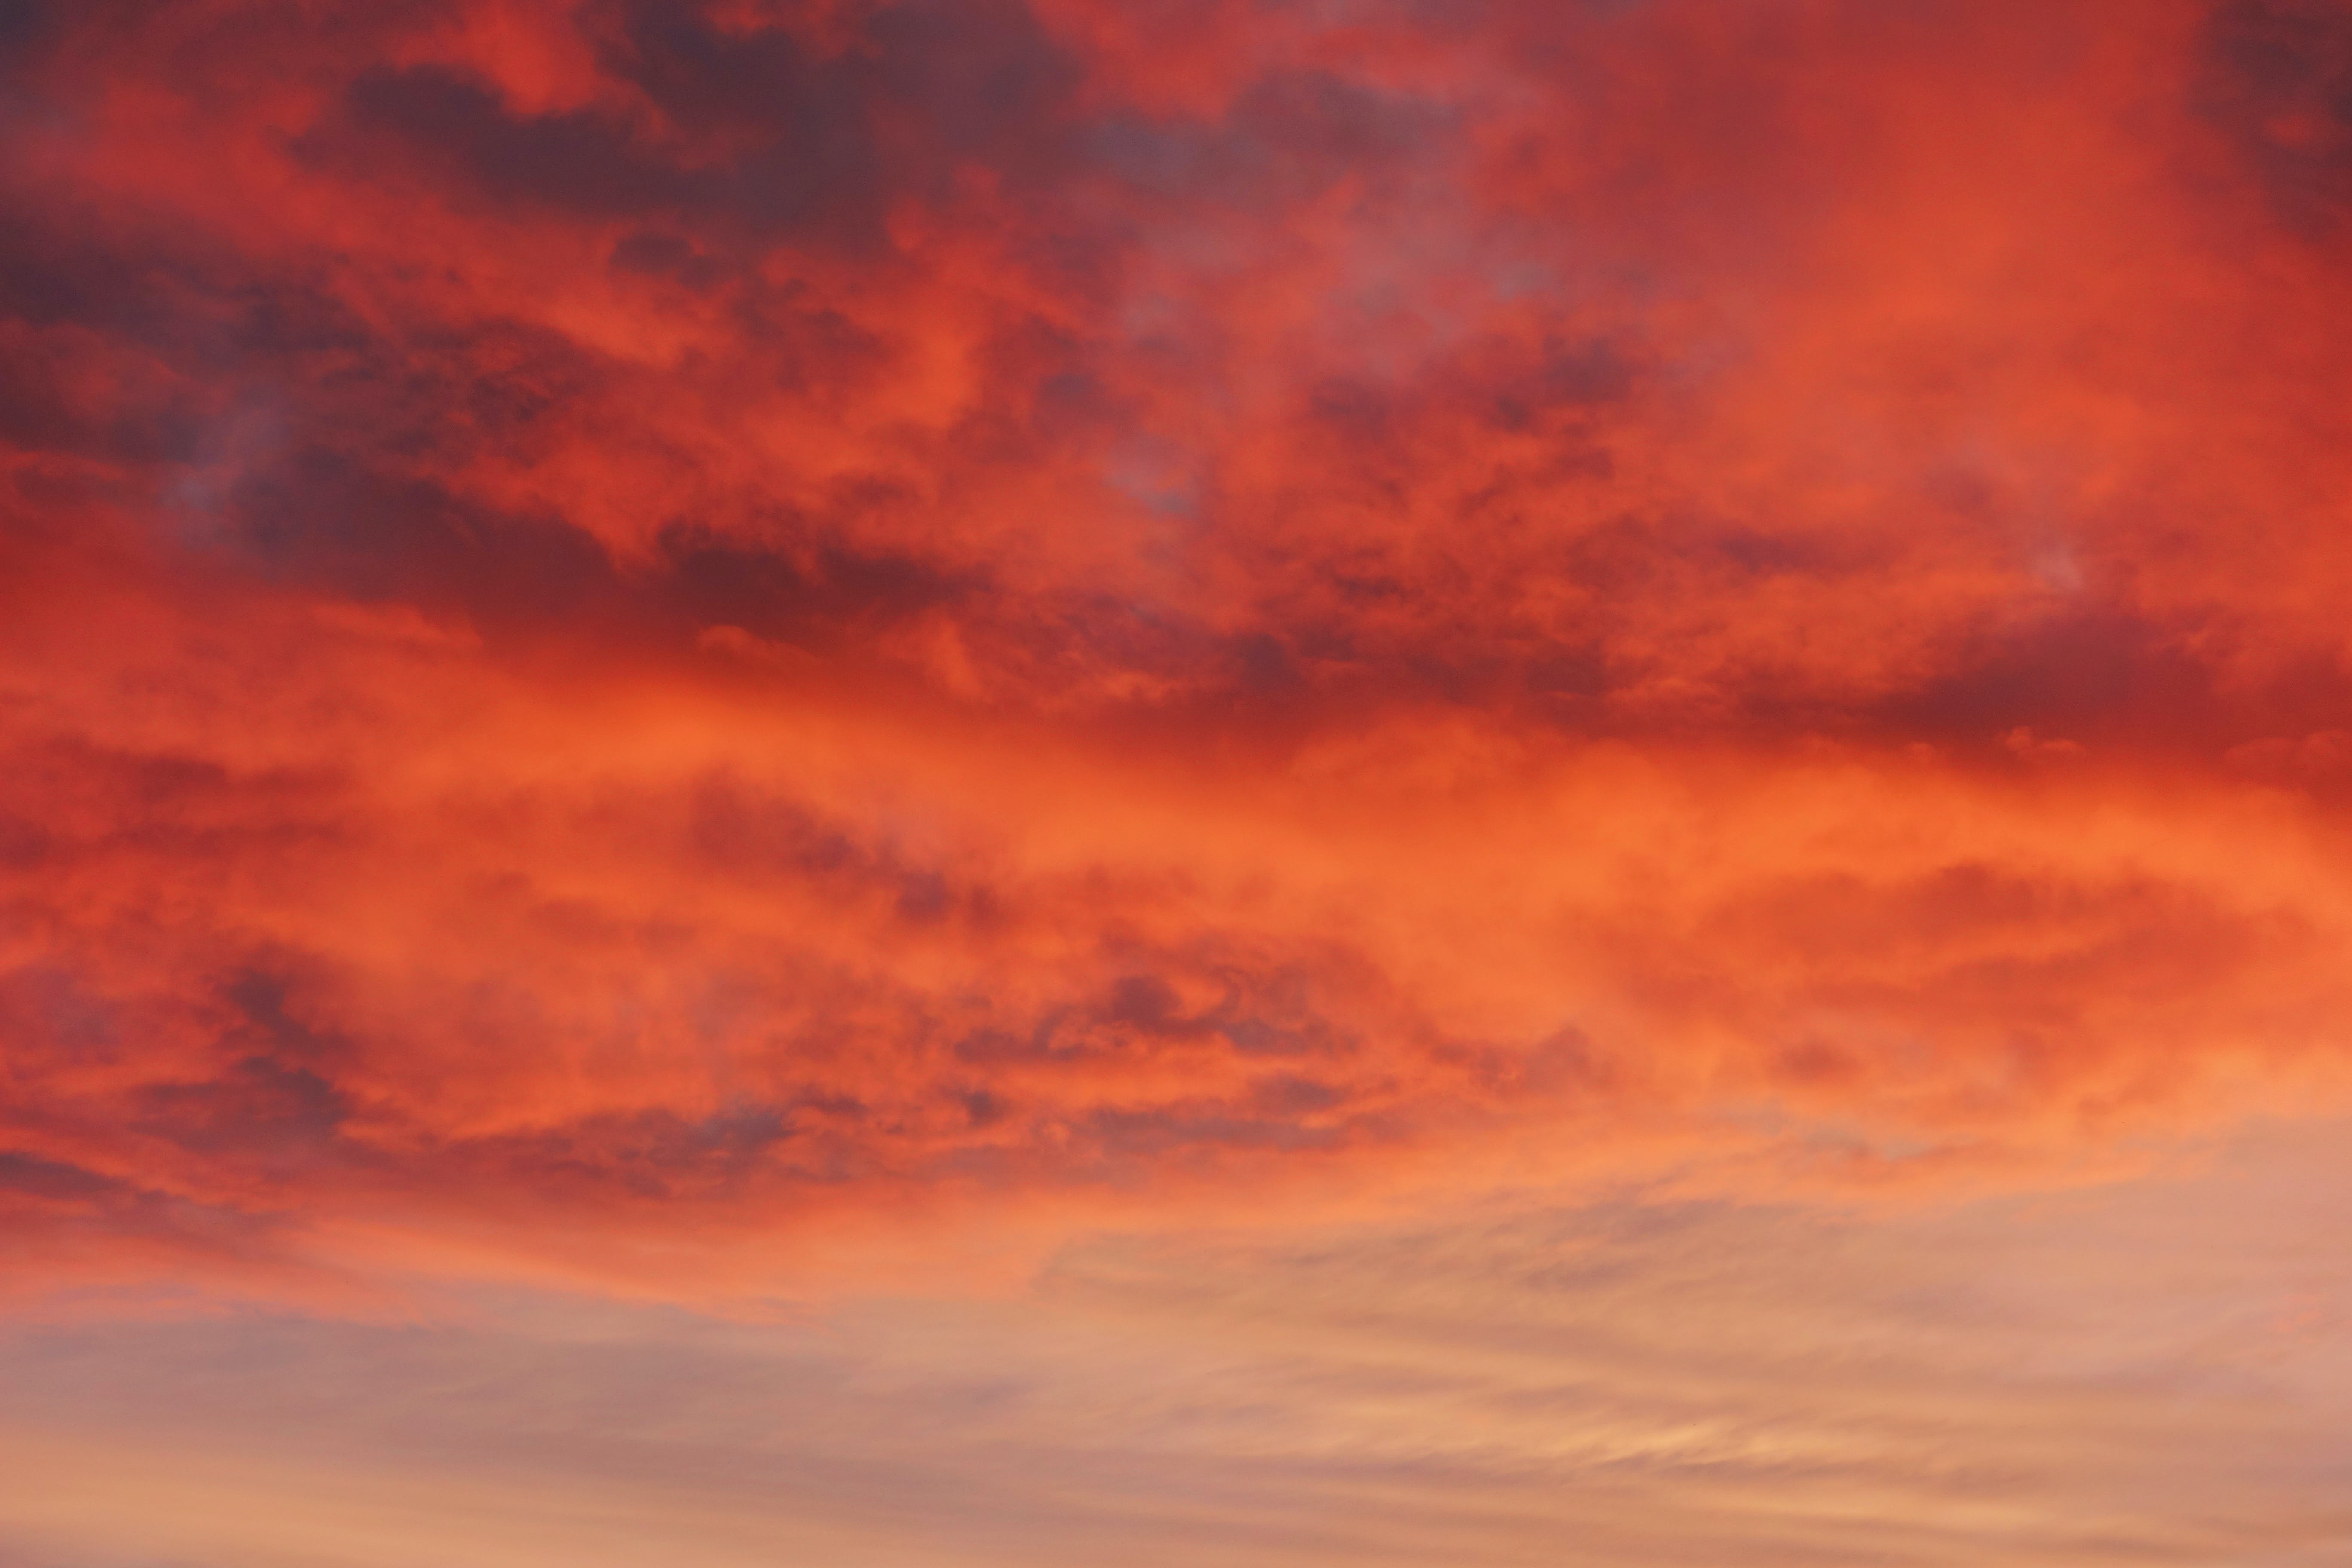 Free stock photo of nature, sky, red, clouds